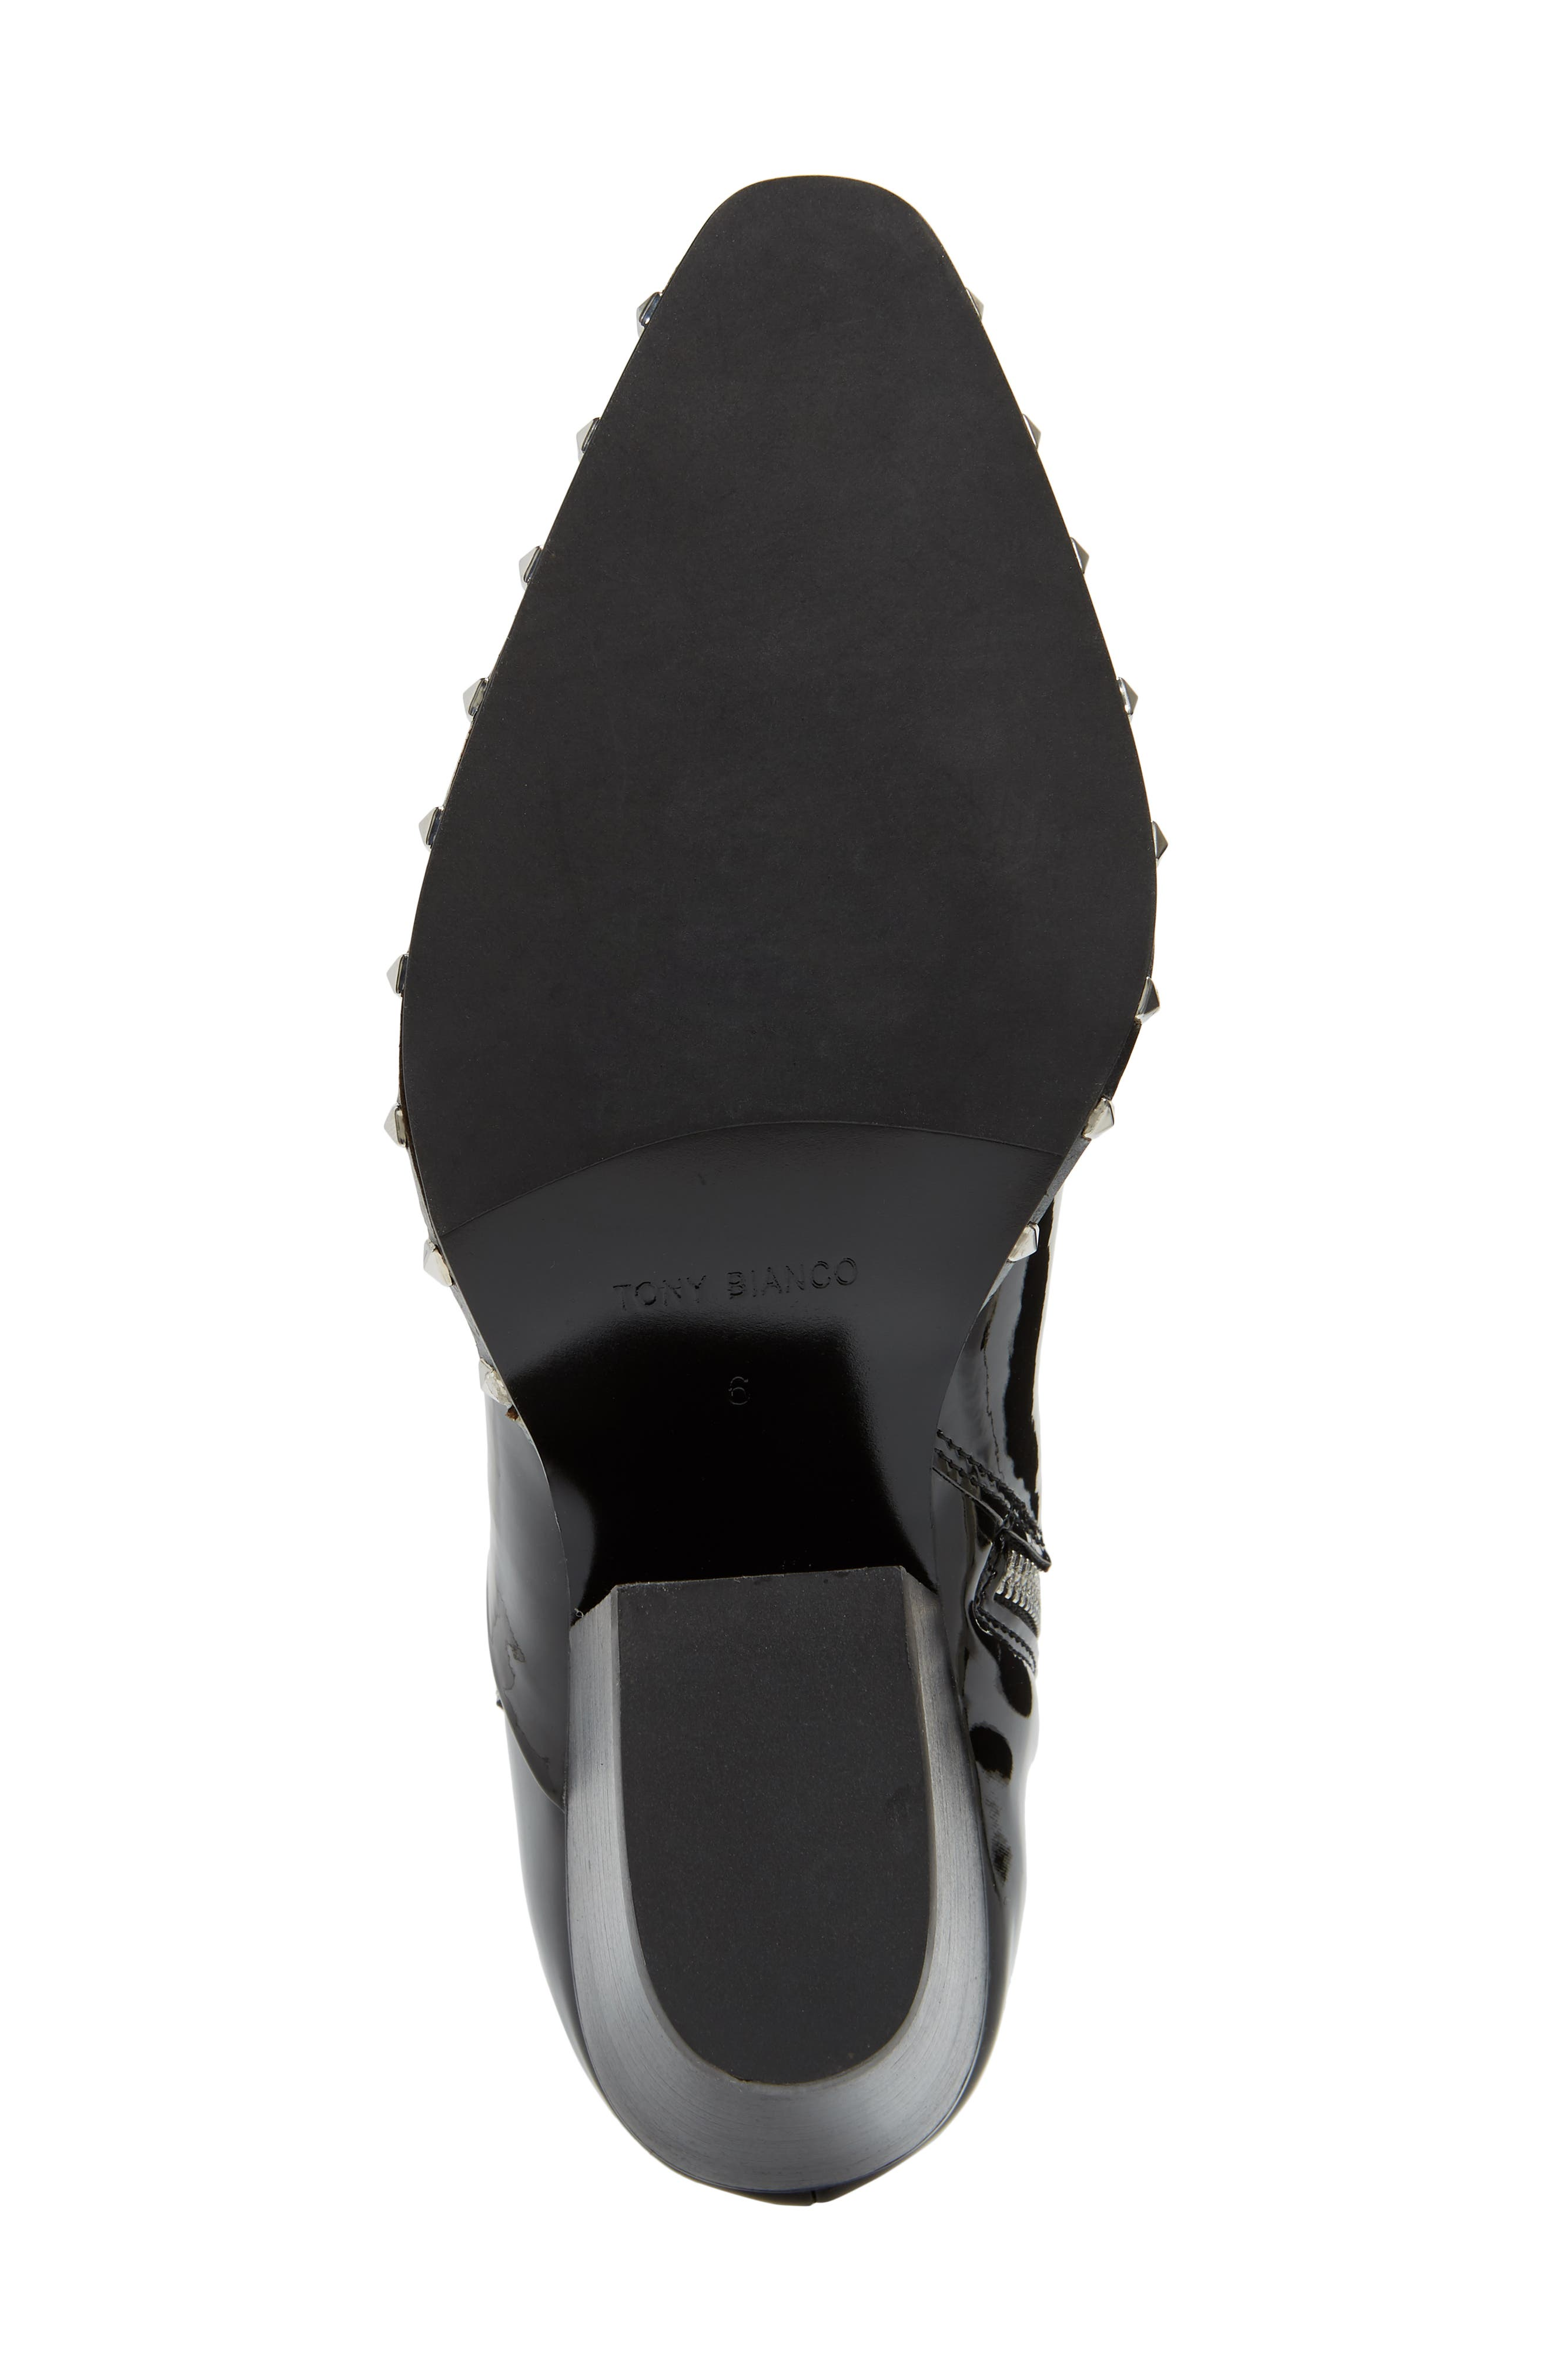 Haines Studded Bootie,                             Alternate thumbnail 6, color,                             MIDNIGHT PATENT LEATHER